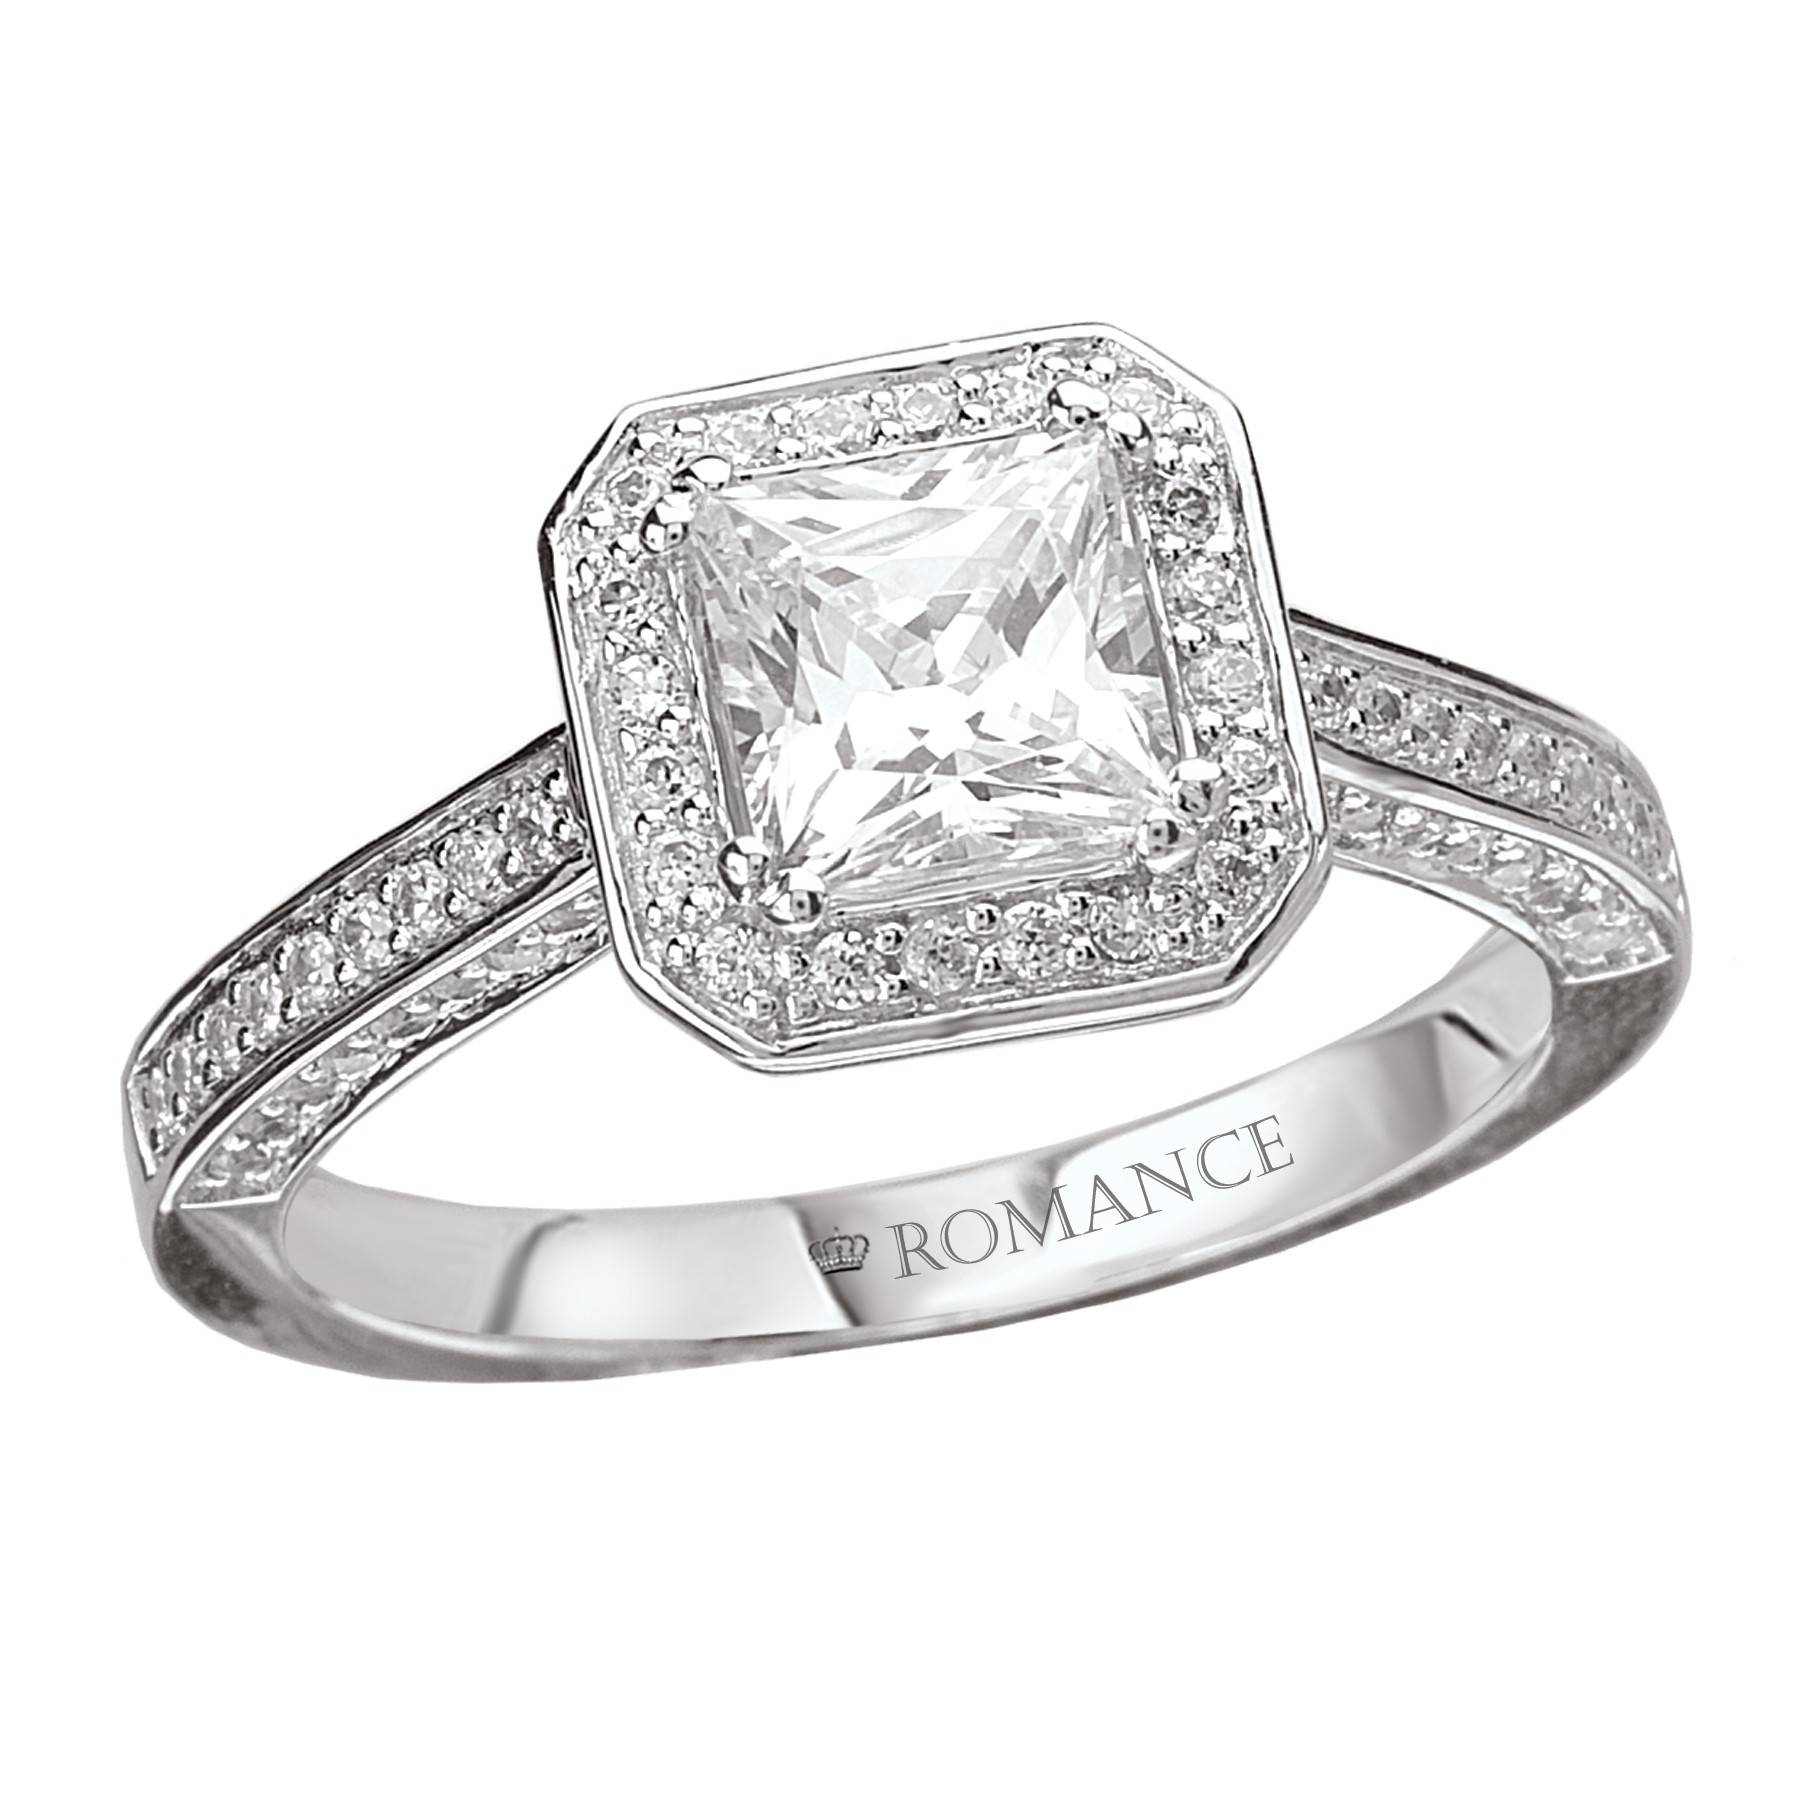 Romance Princess Cut Diamond Engagement Ring | Ipunya Within Most Popular Square Cut Diamond Wedding Bands (Gallery 12 of 15)